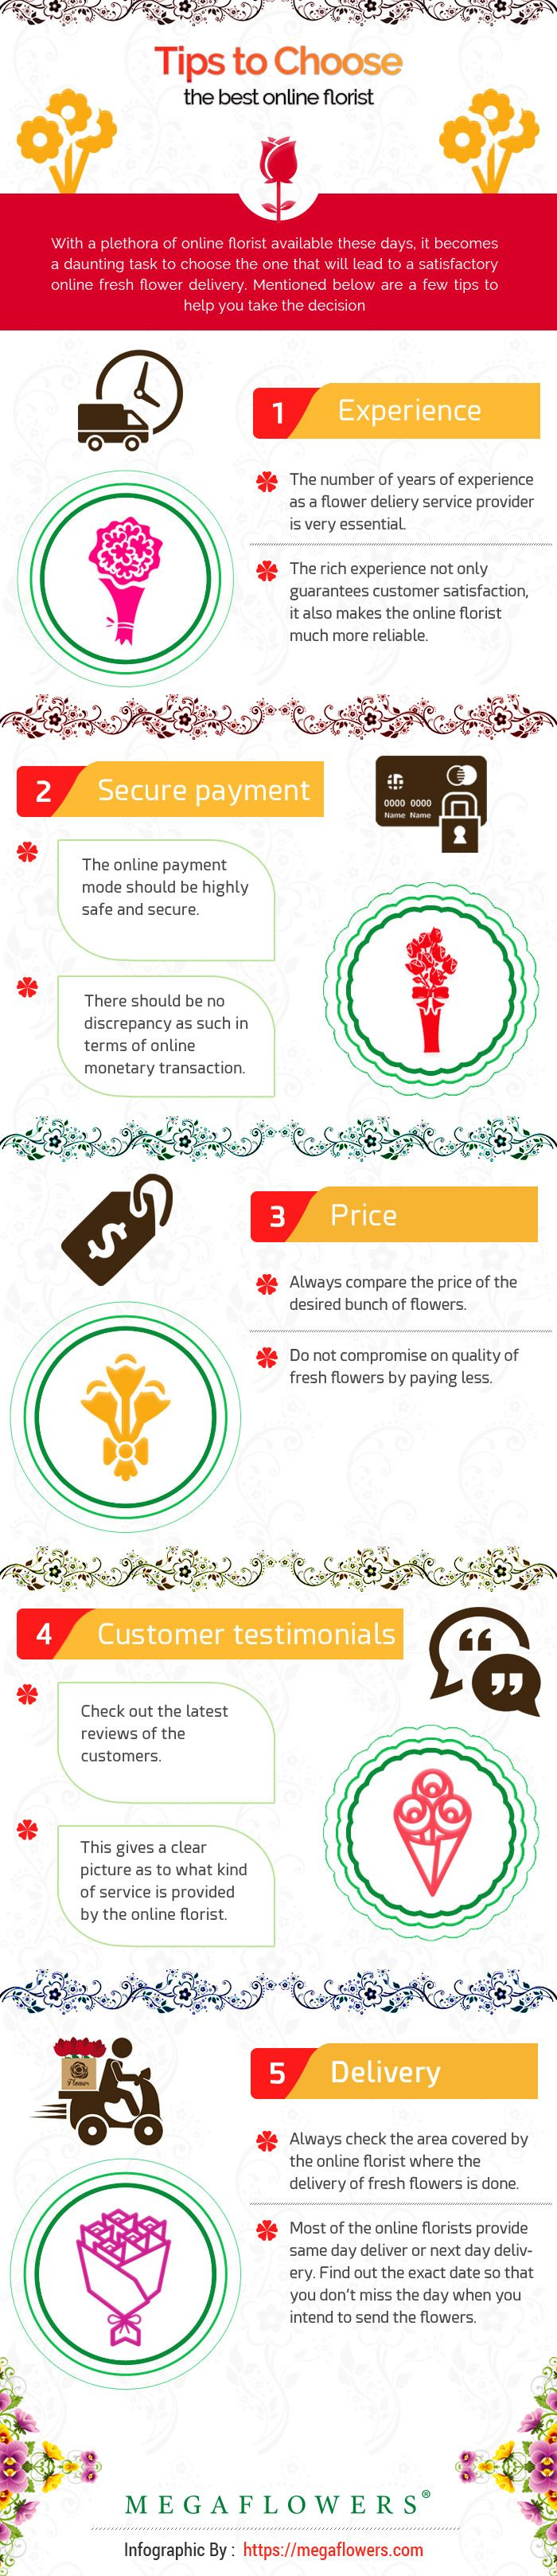 Few essential tips need to be kept in mind while choosing the best online florist. Always go for the experienced florist, check weather the payment gateways are safe or not, compare the price, read the testimonials and find out the exact delivery time. By following these helpful tips, you will end up ordering fresh flower delivery through a reputed and trustworthy online florist. Check out the infographic below and get to know the steps to be taken in detail. https://megaflowers.com/